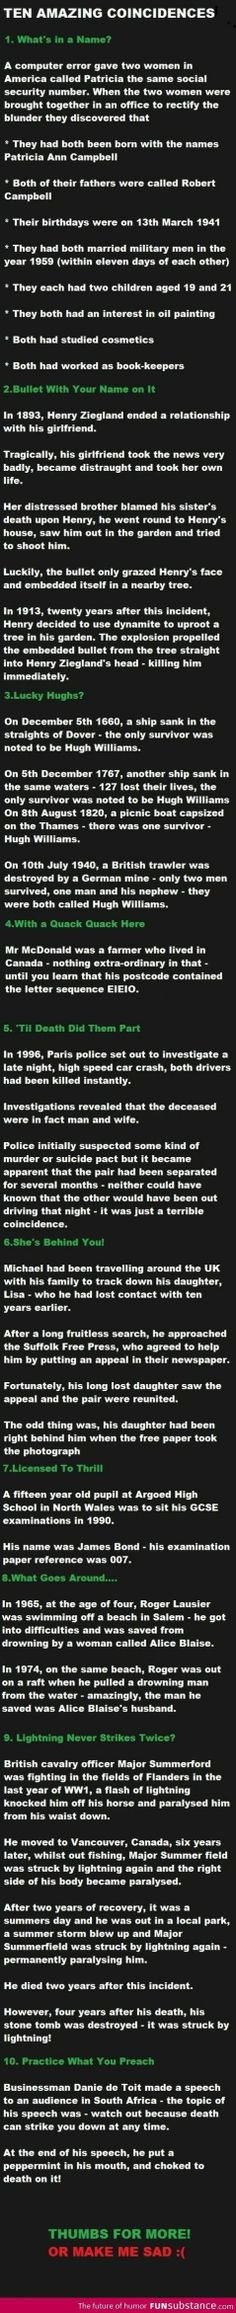 TEN AMAZING COINCIDENCES | For Shits And Giggles